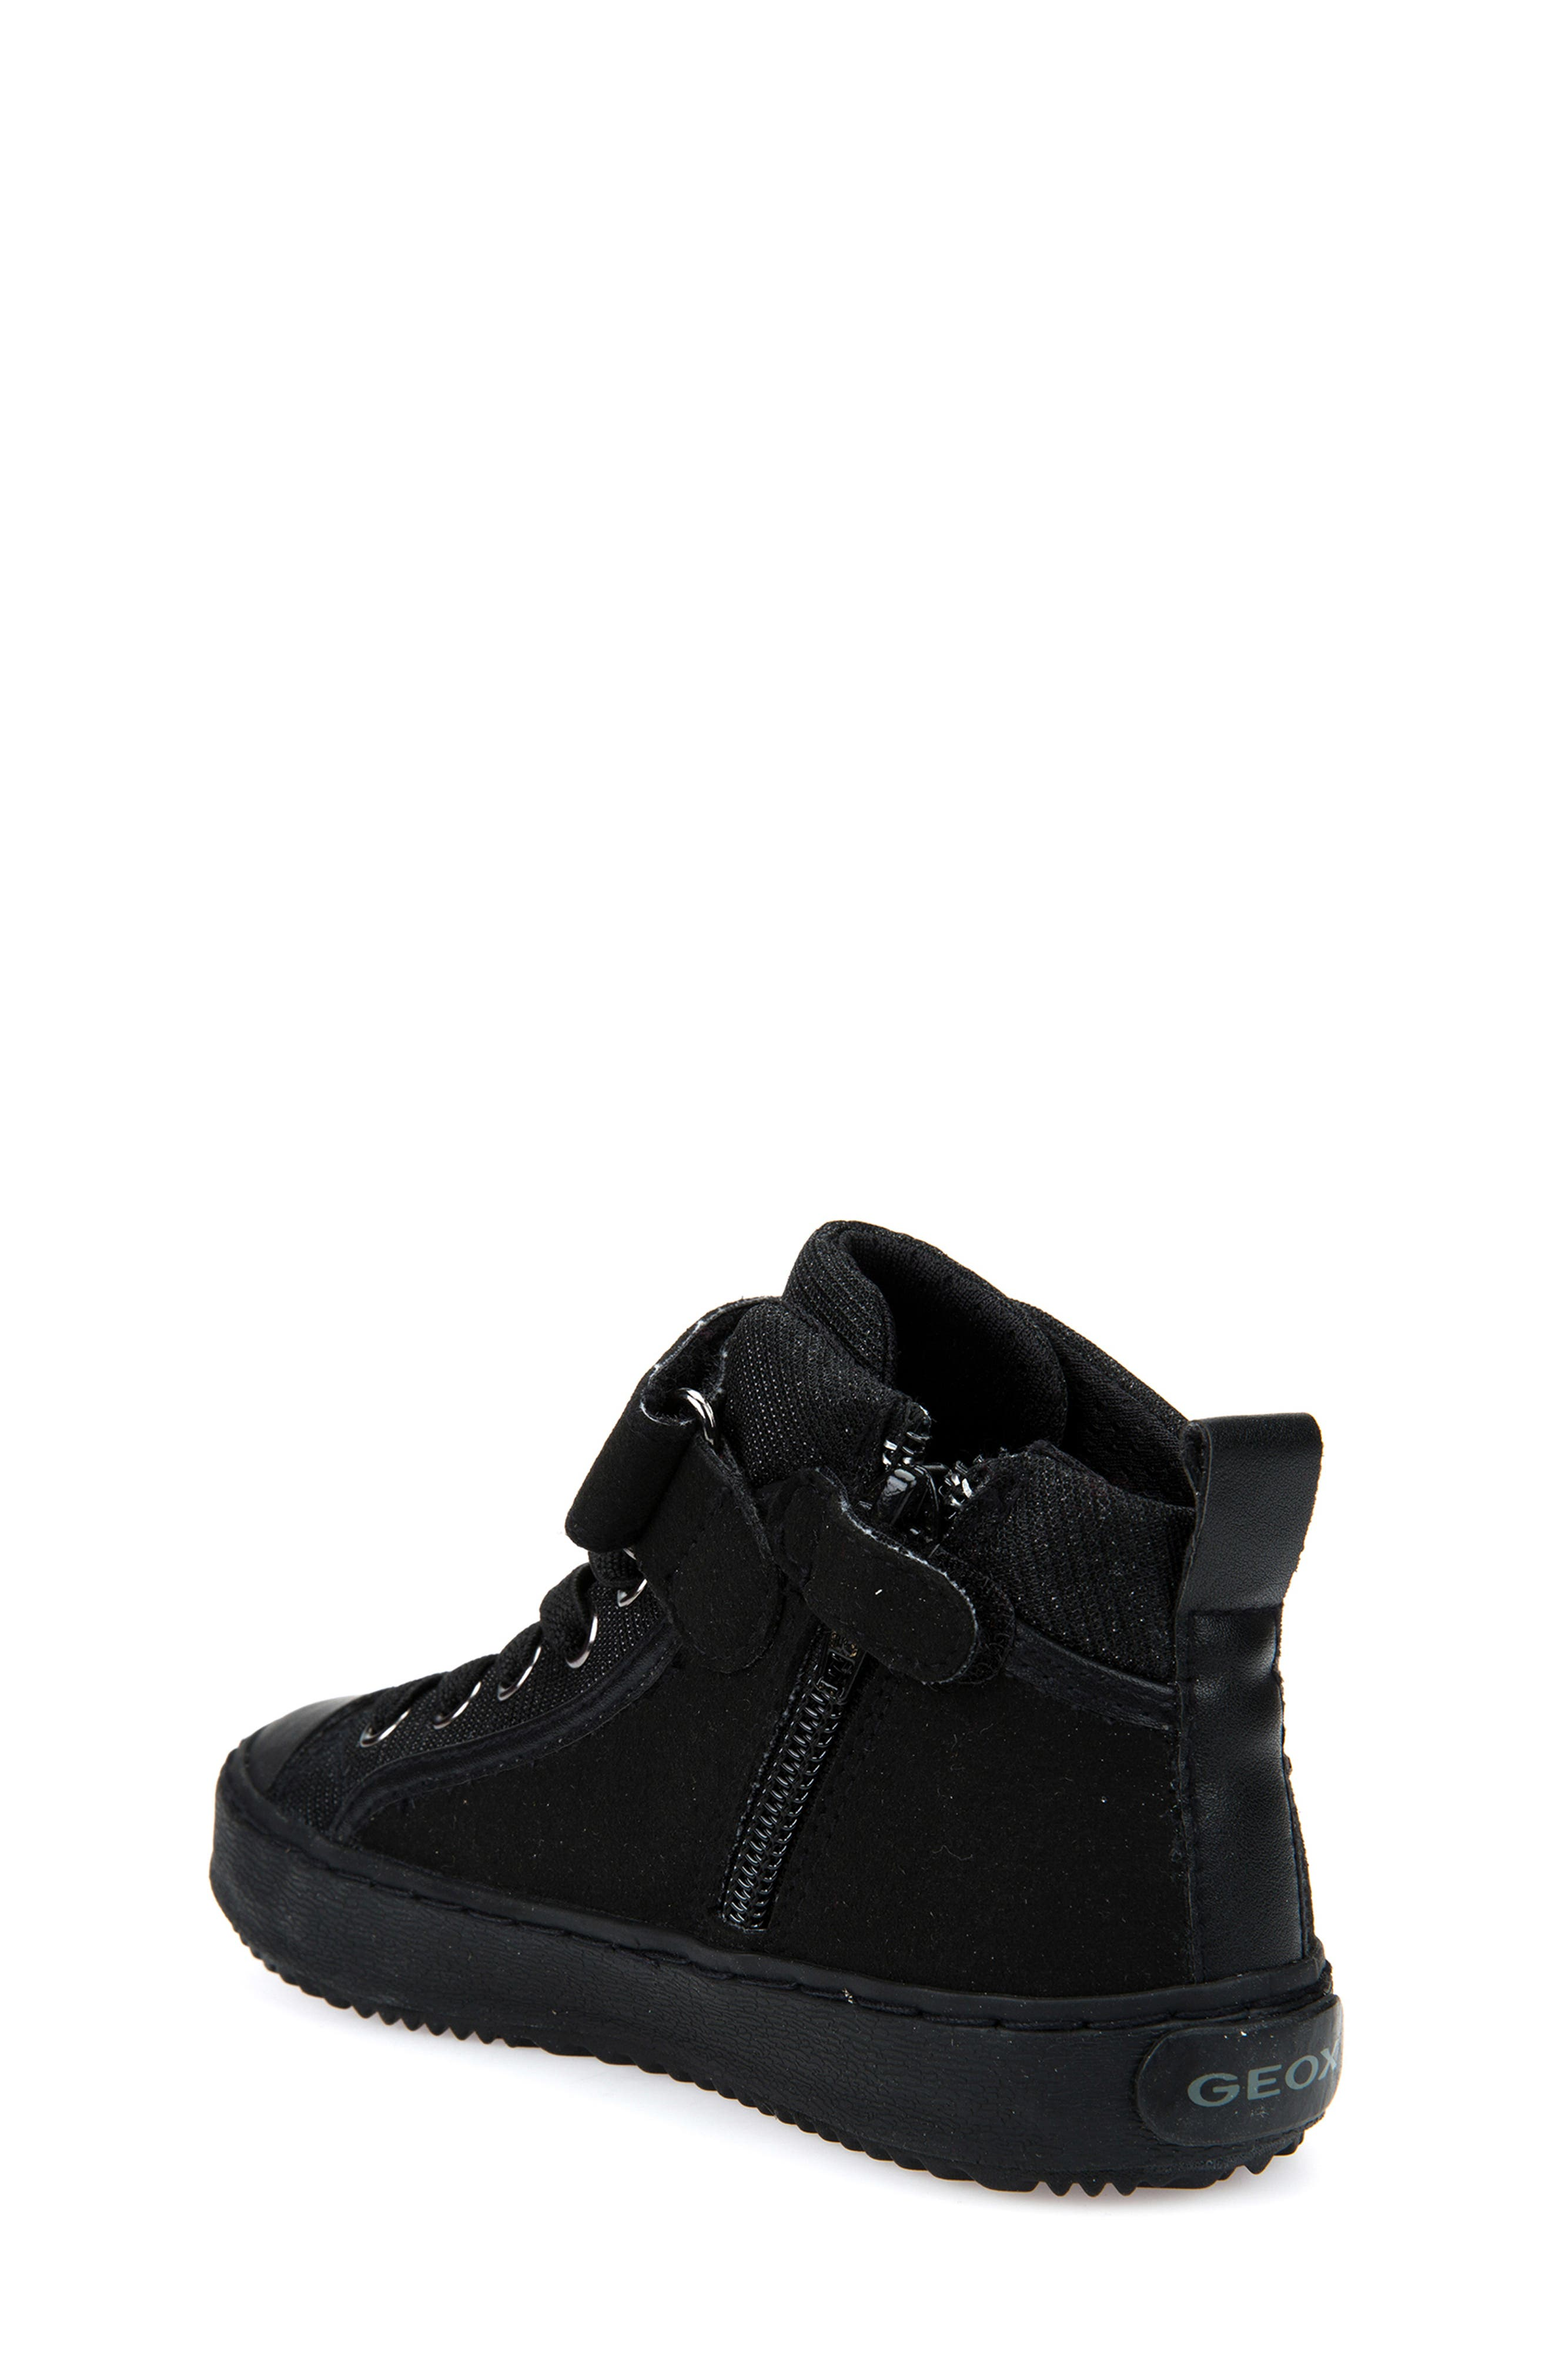 Kalispera High Top Sneaker,                             Alternate thumbnail 2, color,                             BLACK